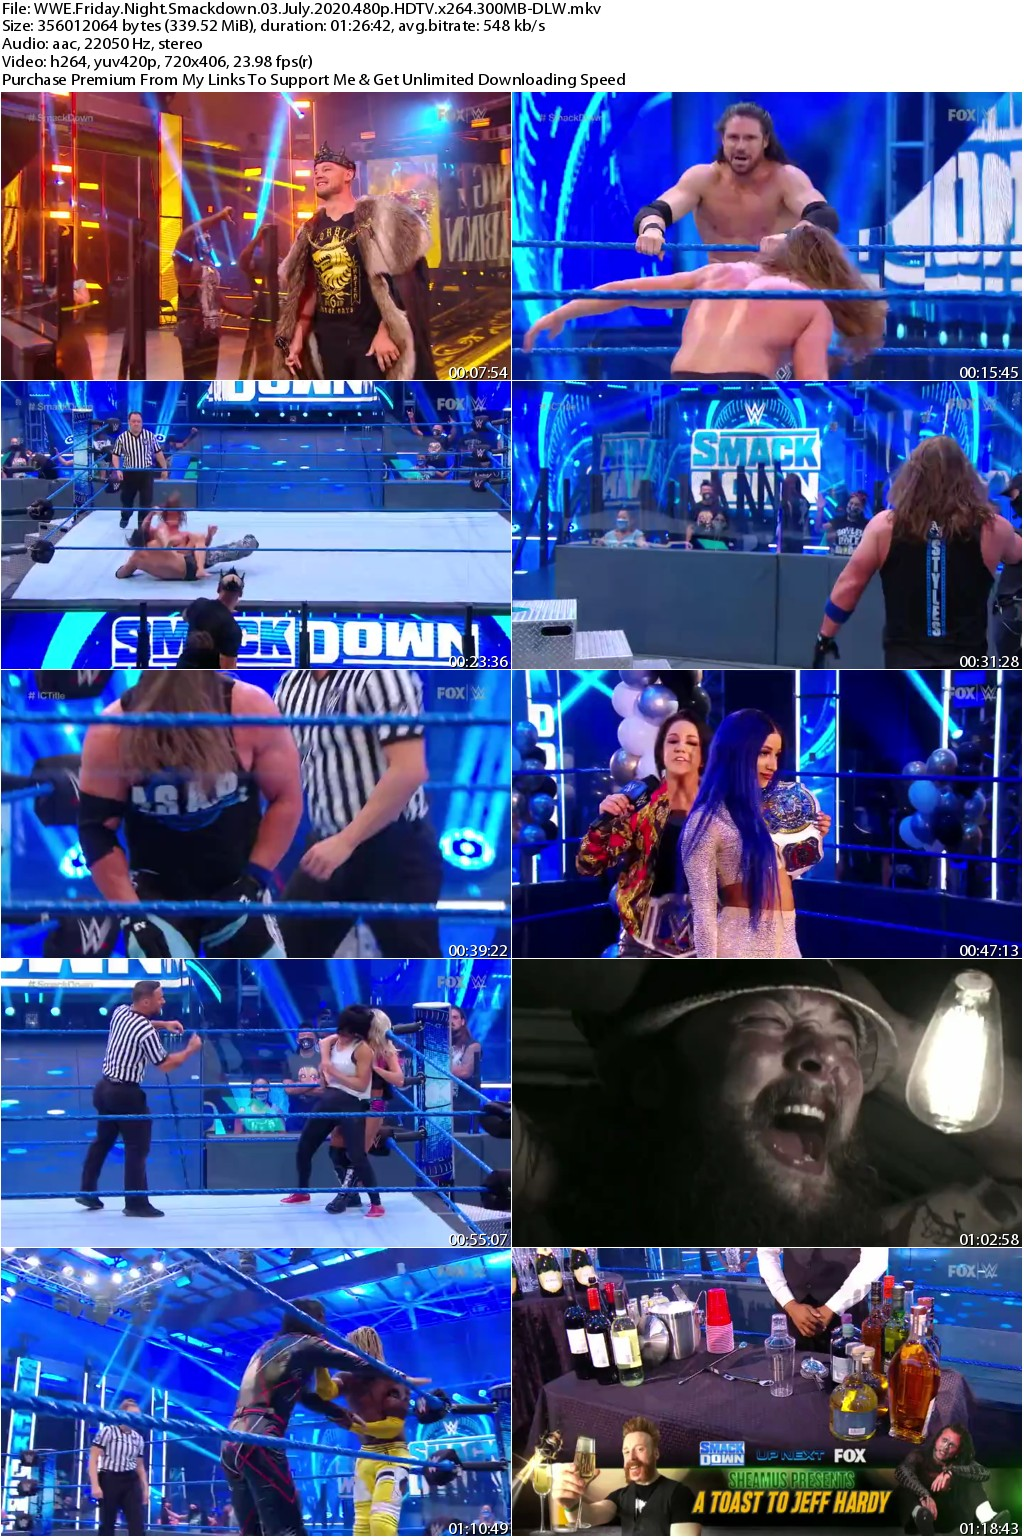 WWE Friday Night Smackdown 03 July 2020 480p HDTV x264 300MB-DLW